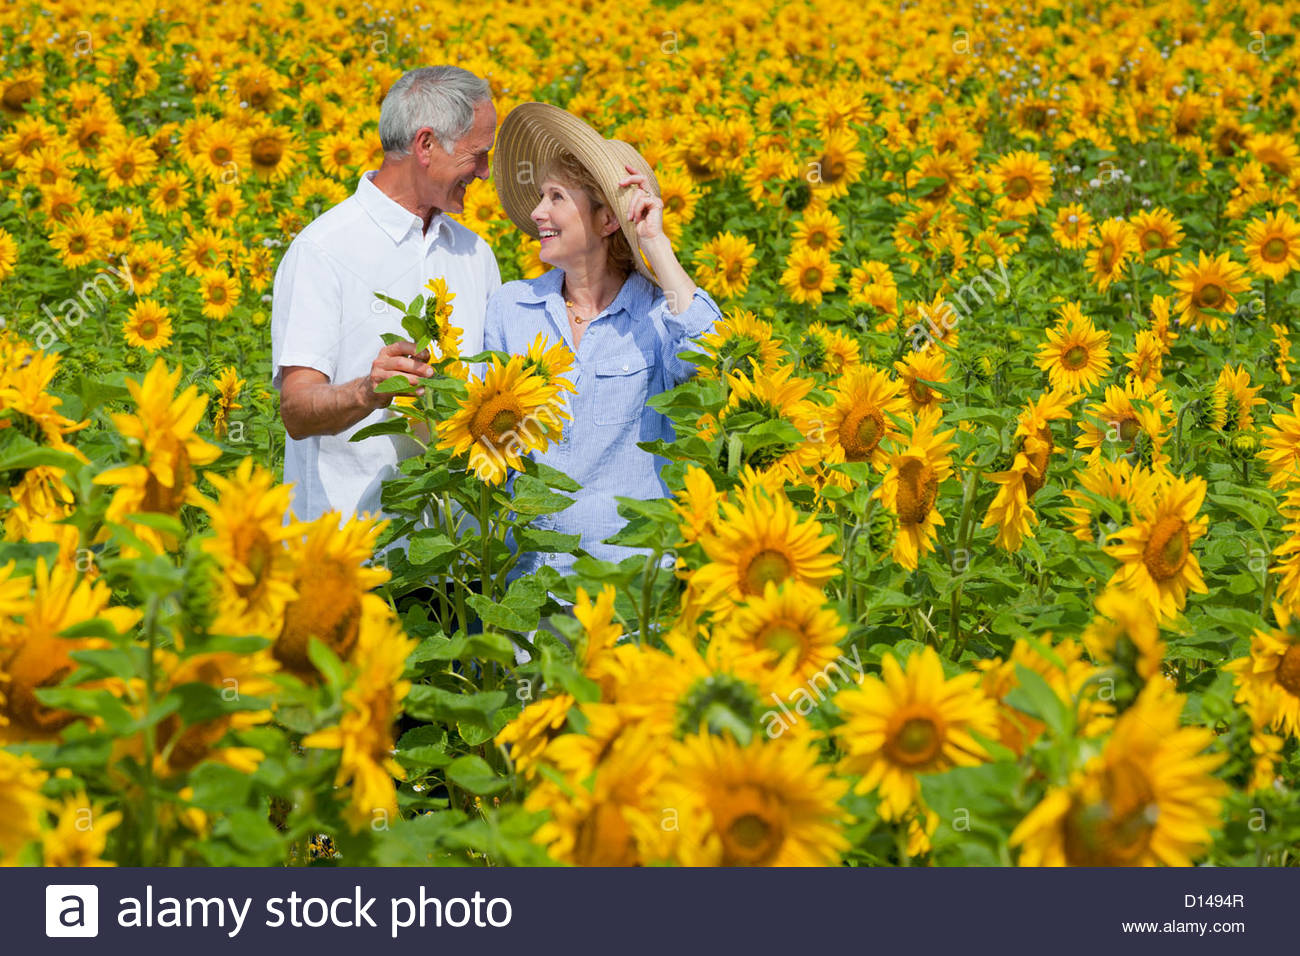 Smiling couple among sunflowers in sunny meadow - Stock Image